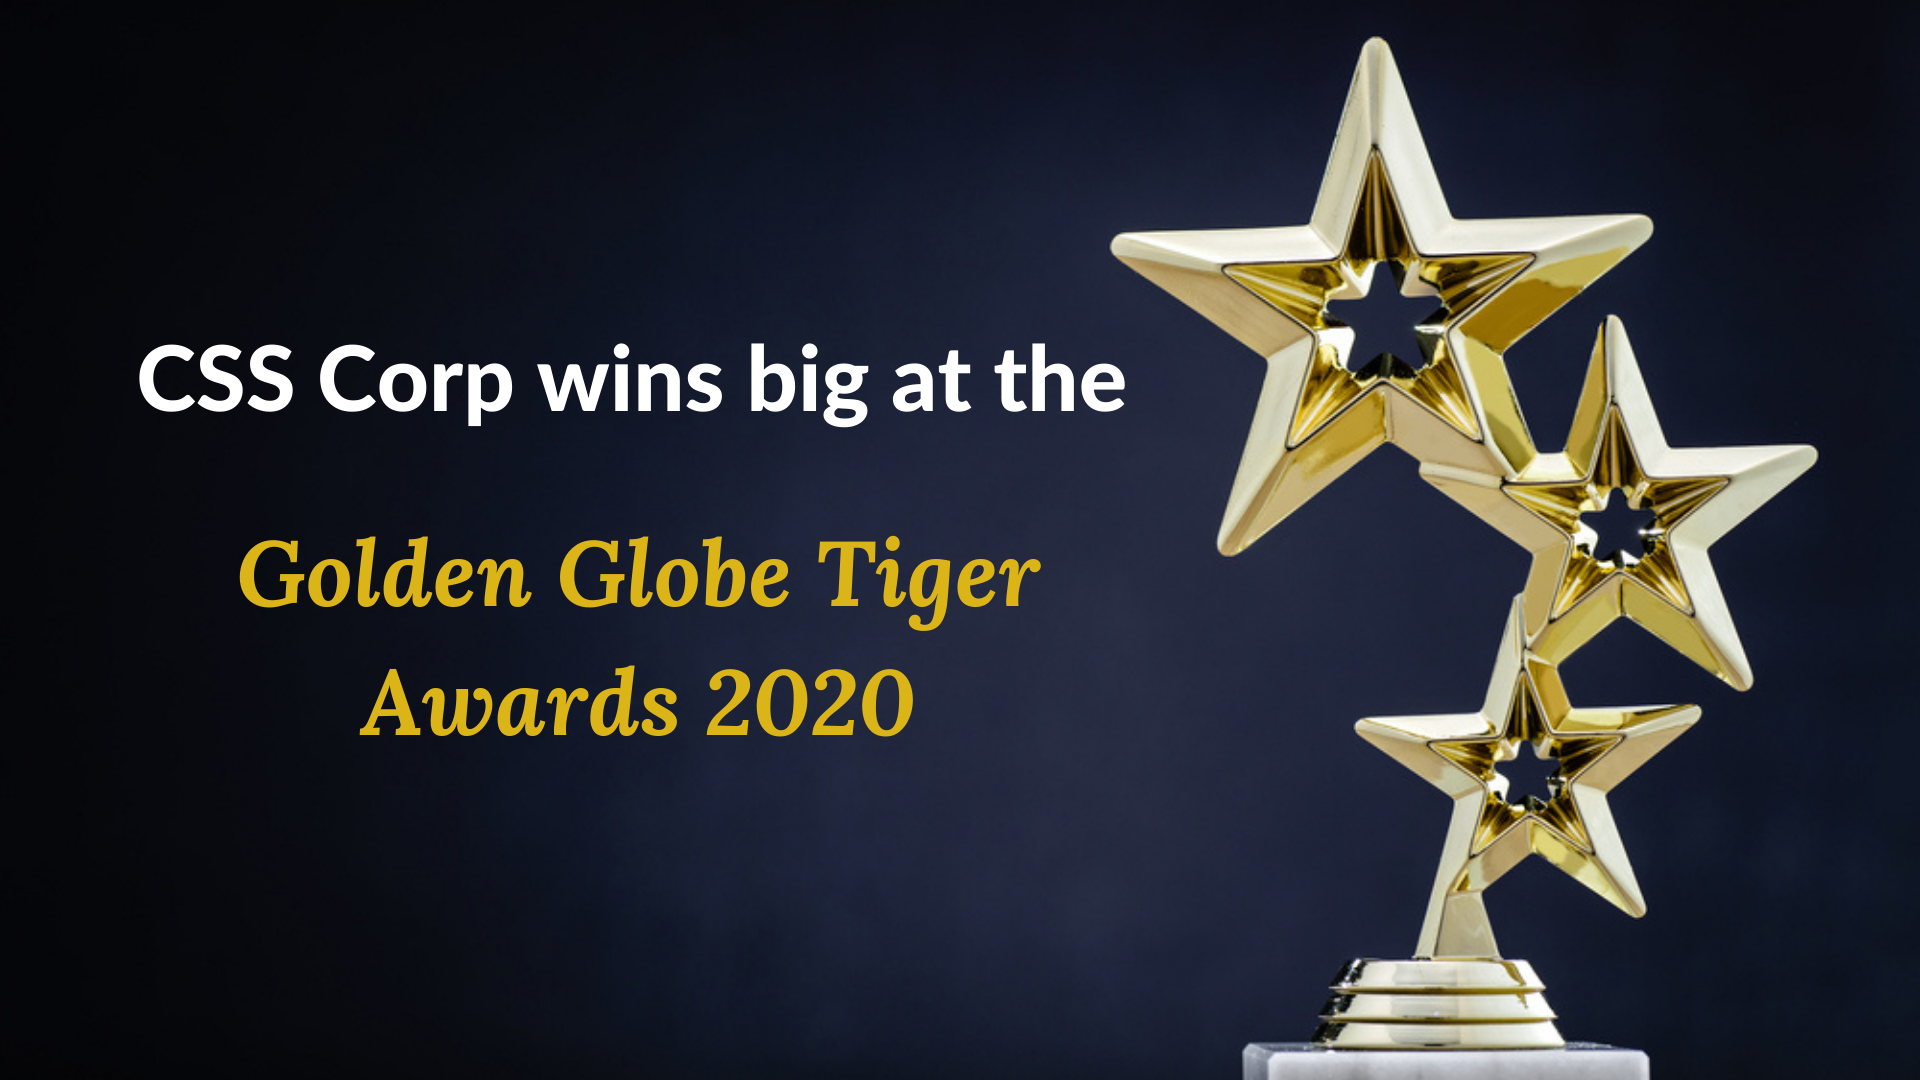 CSS Corp wins big at the Golden Globe Tiger Awards 2020